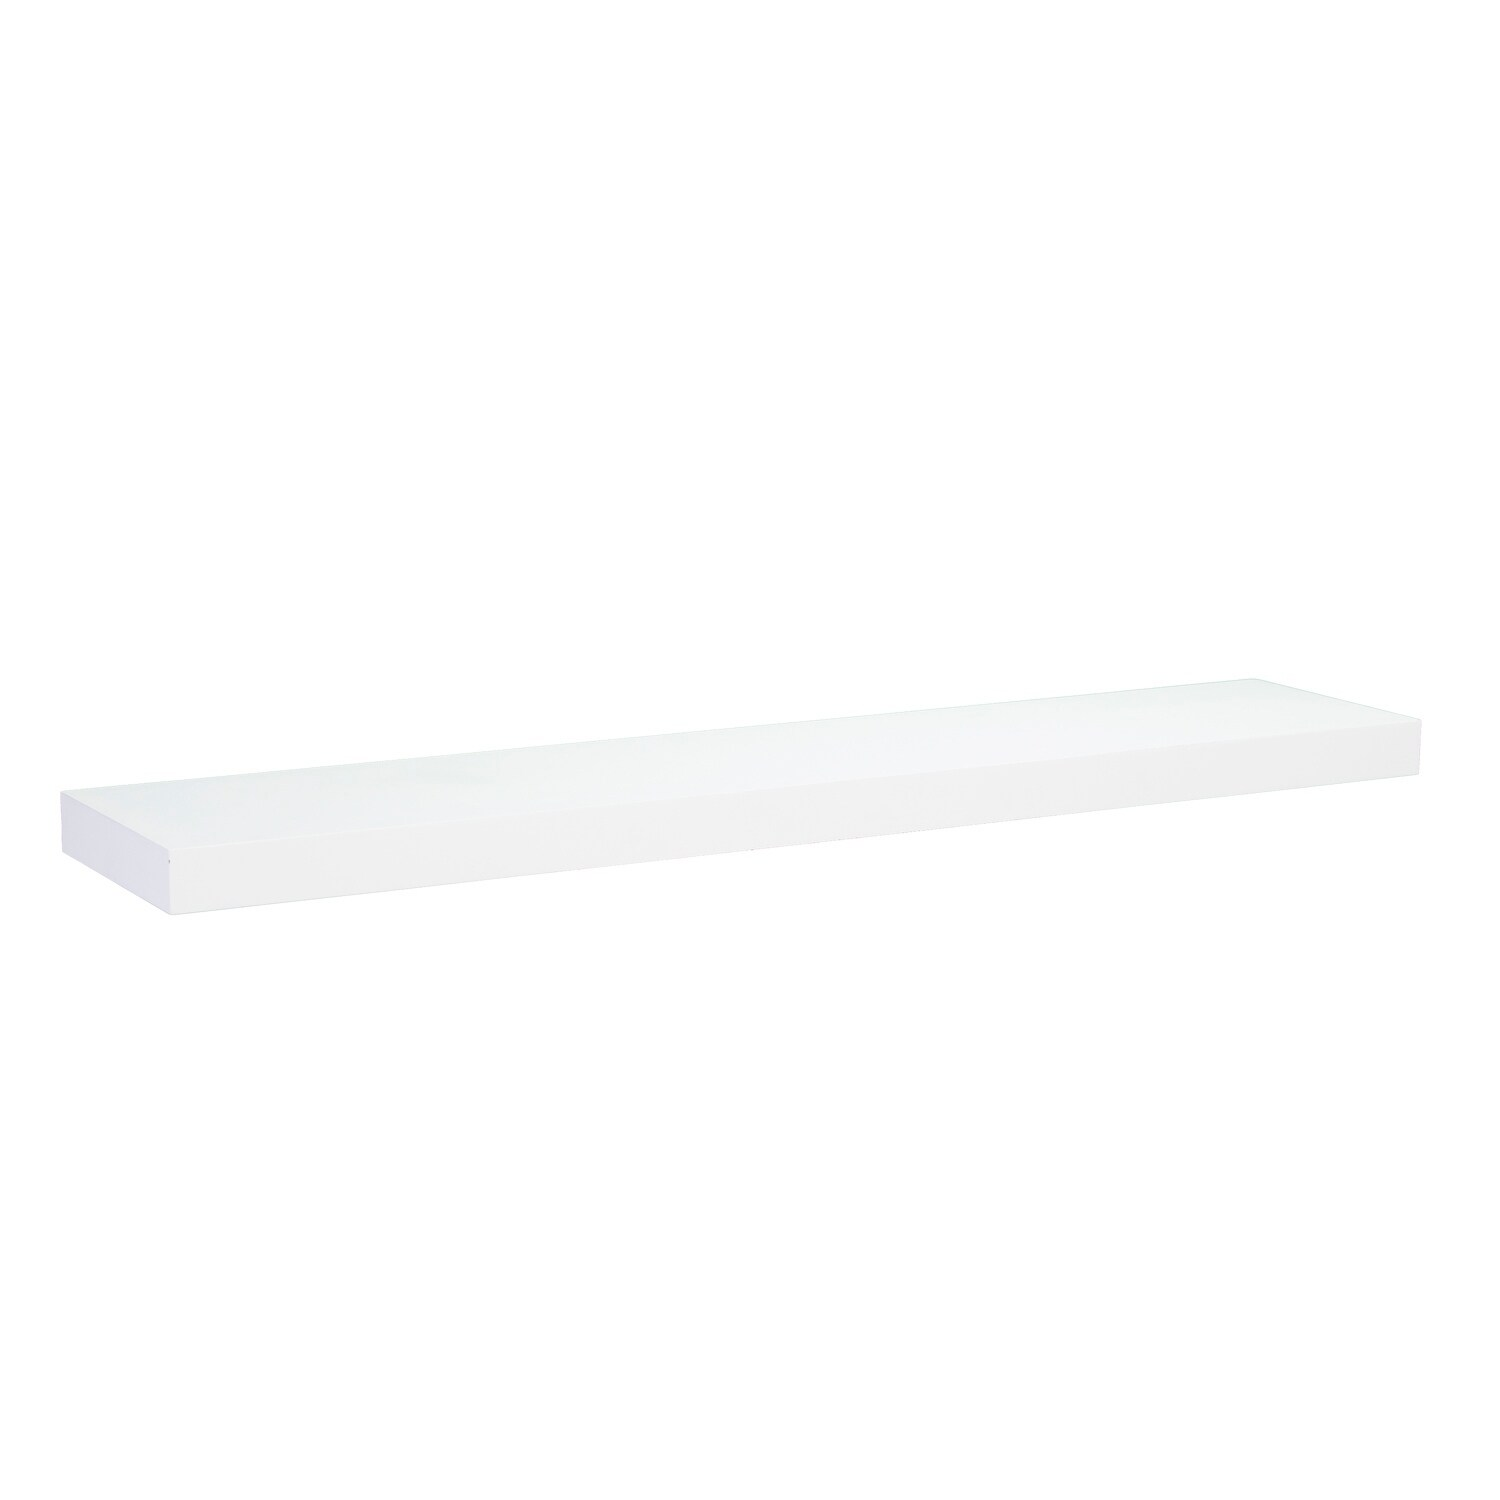 porch den sorlie inch espresso floating shelf harper blvd tampa glass free shipping today home decorators drywall anchors for shelves mounted desk coat closet depth funky white